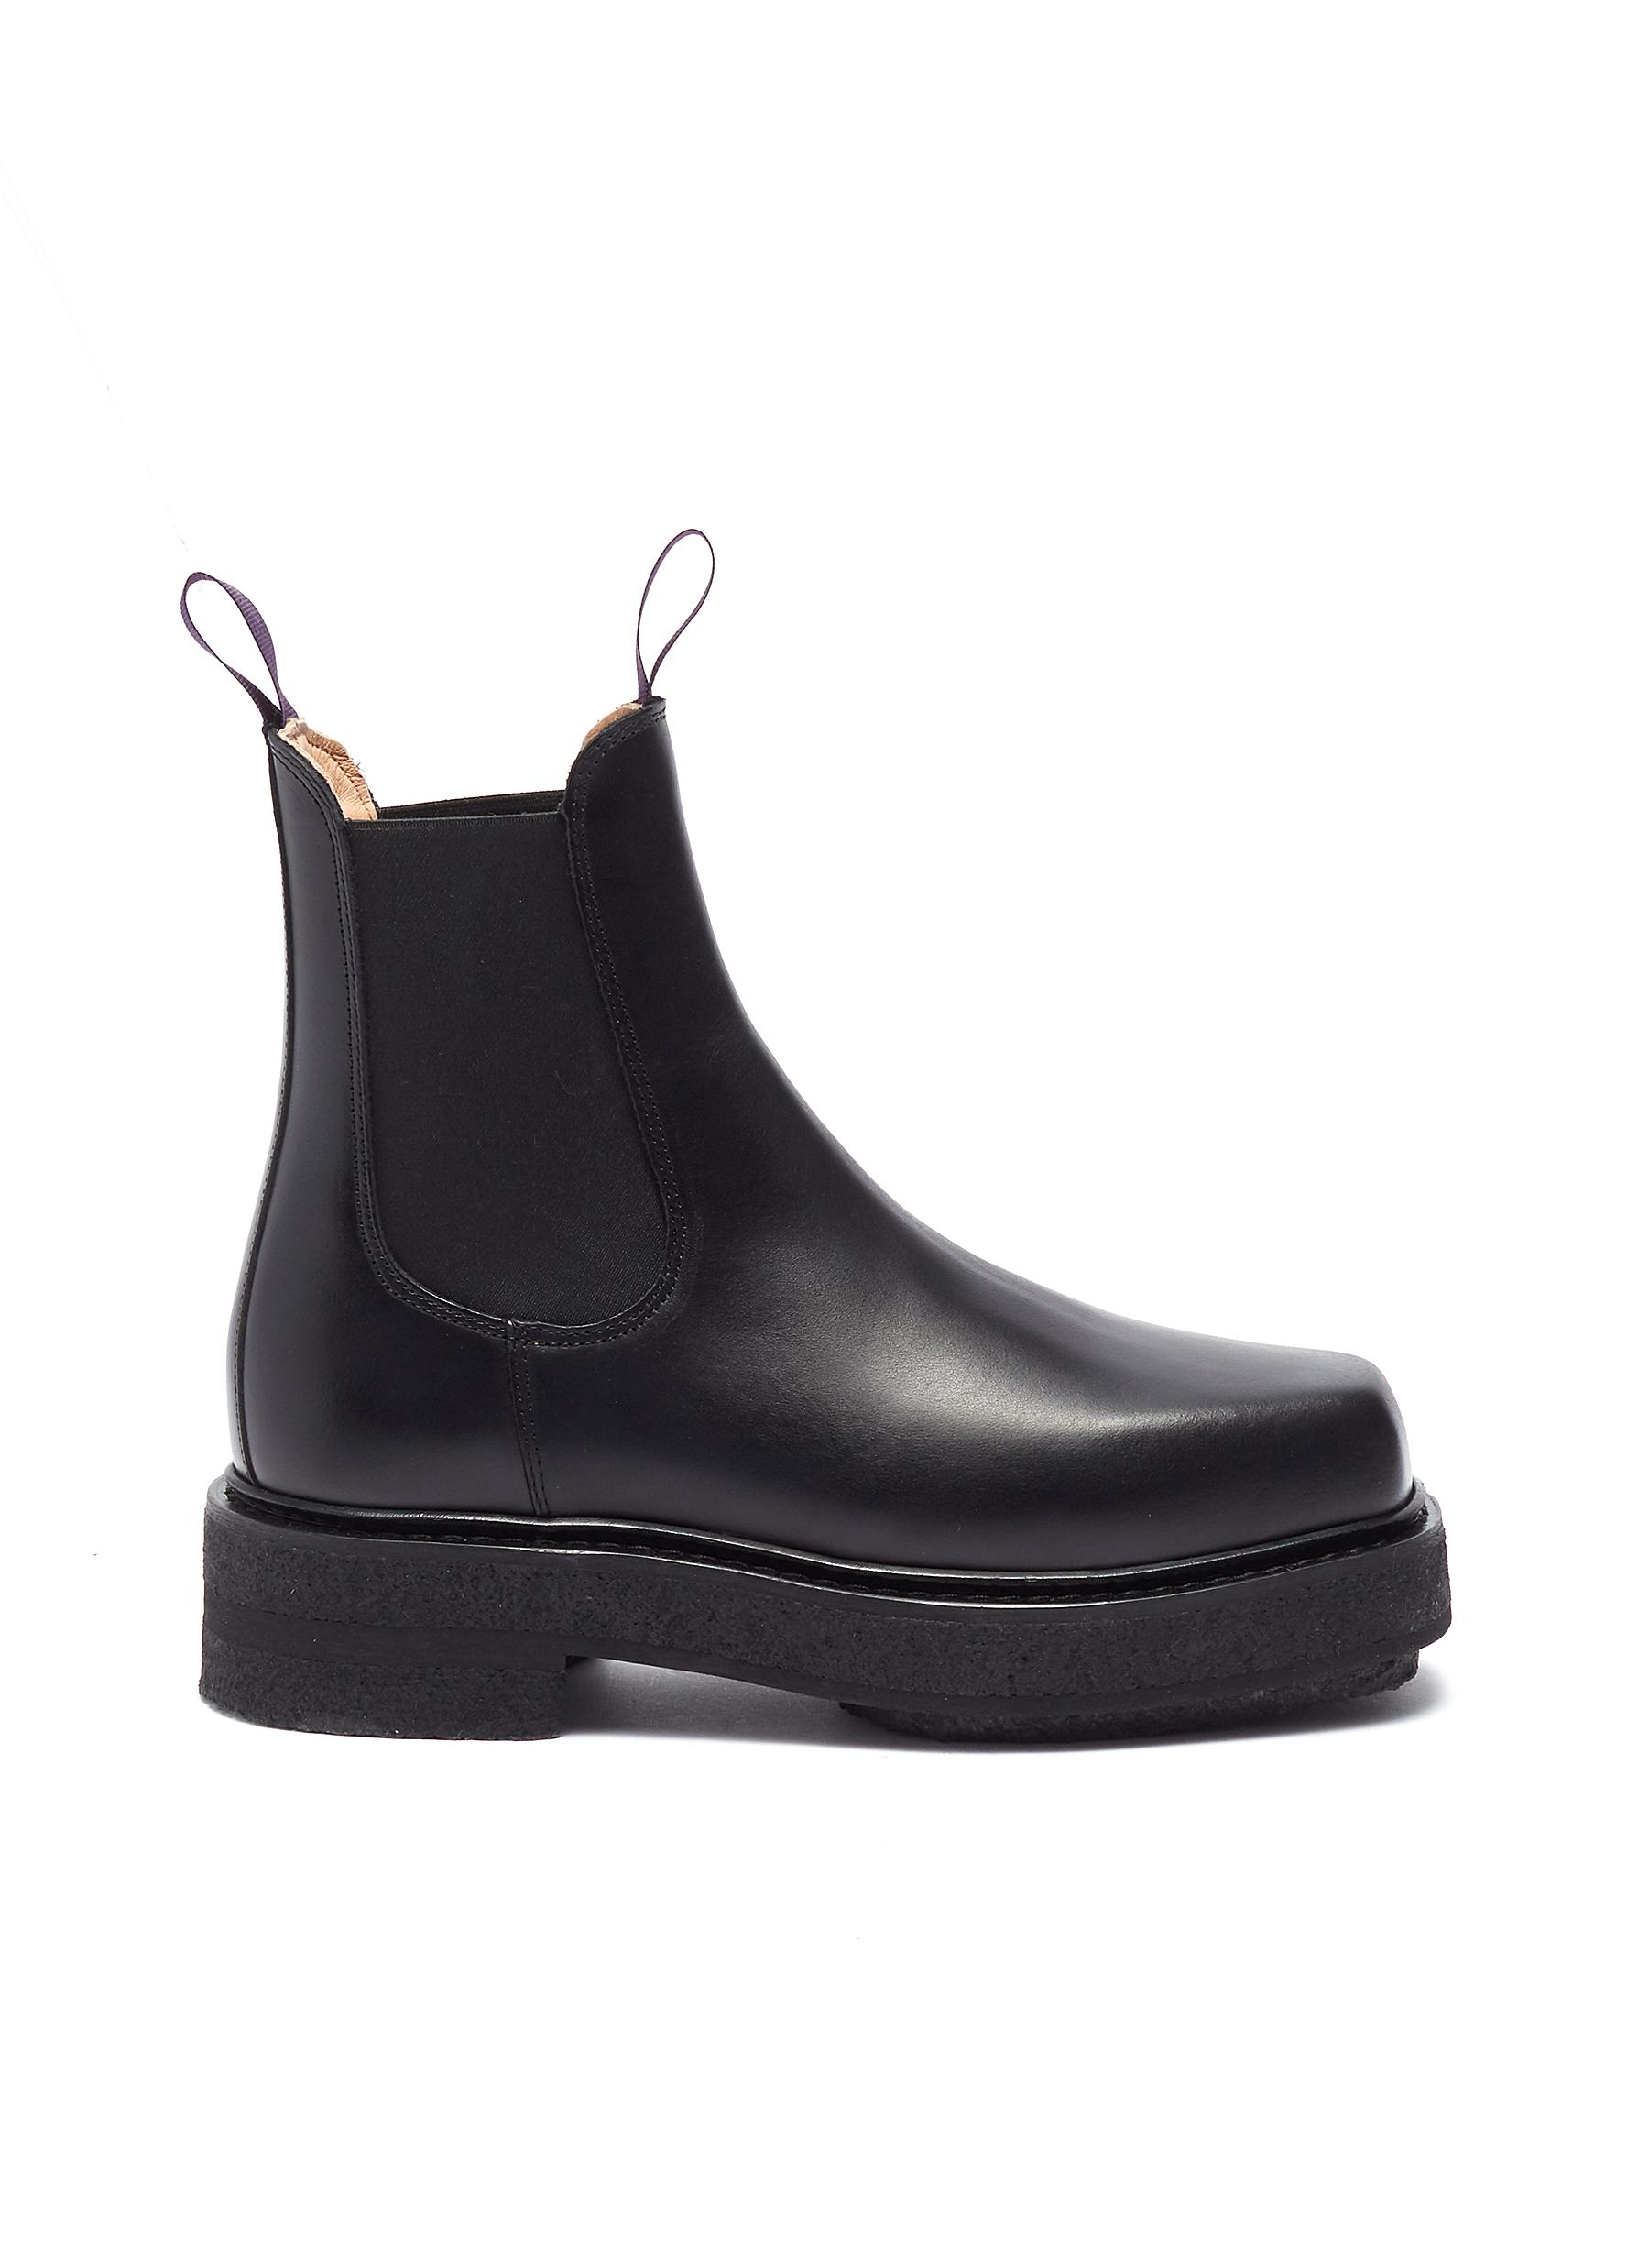 Ortega leather Chelsea boots by Eytys